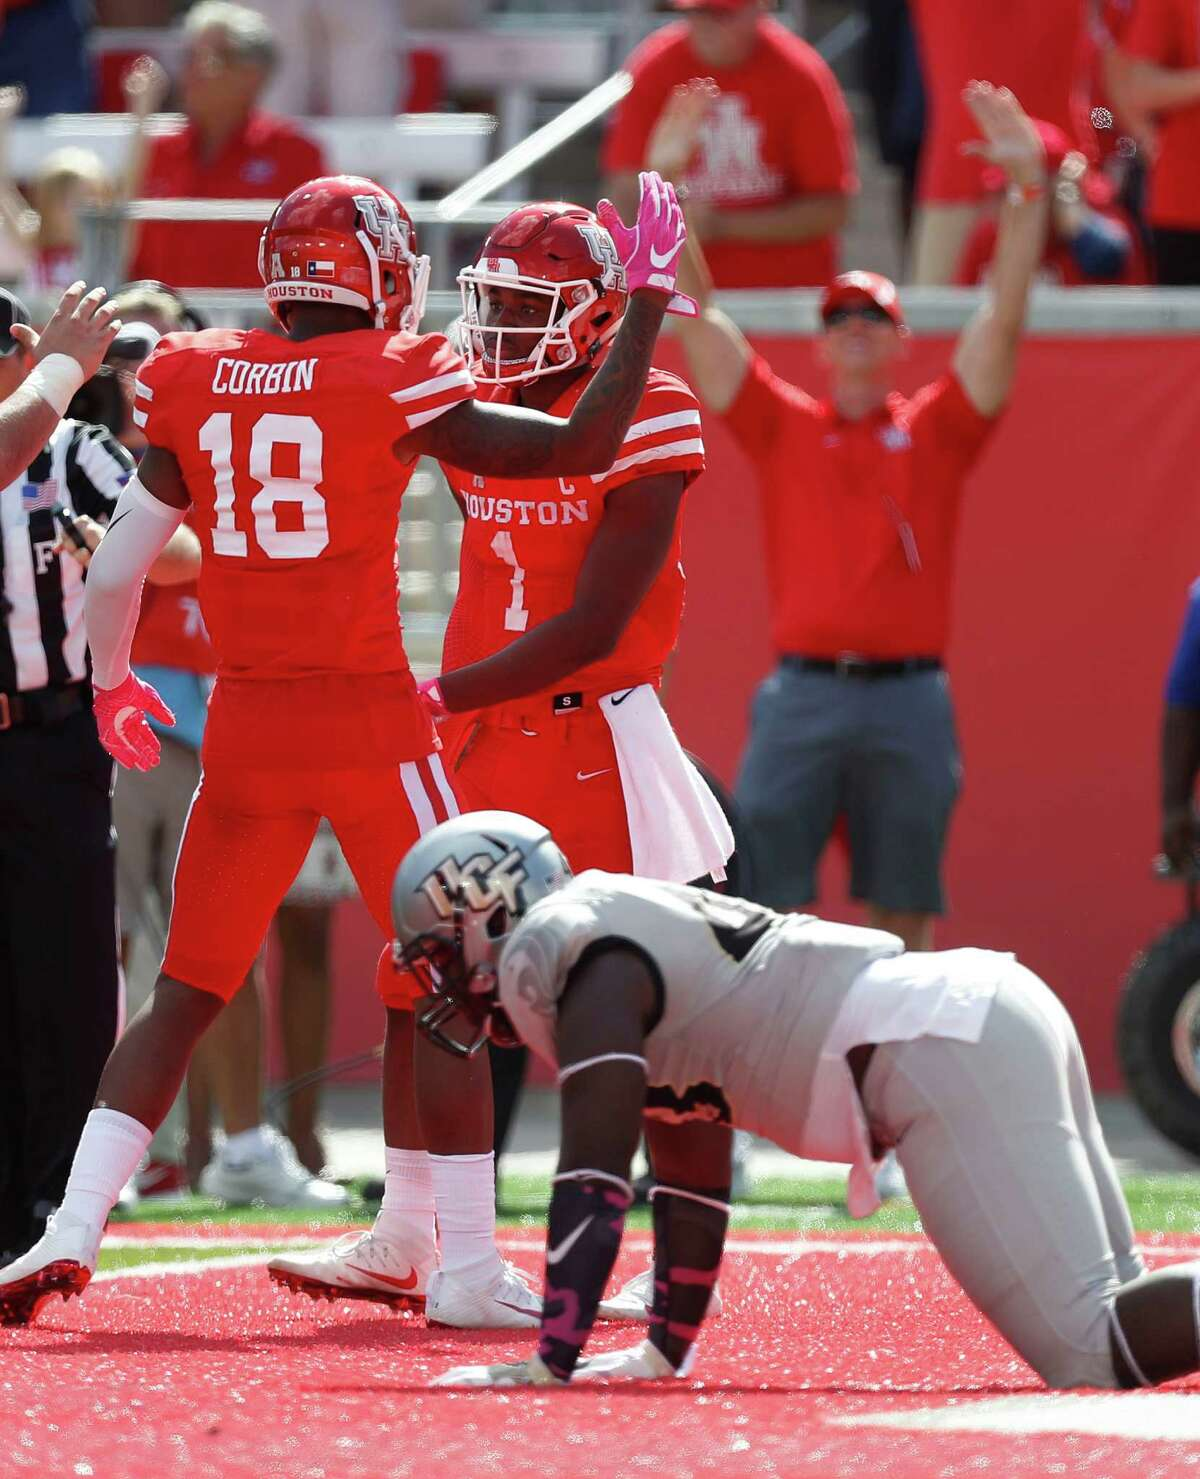 Houston Cougars quarterback Greg Ward Jr. (1) celebrates with wide receiver Keith Corbin (18) just after scoring the go-ahead touchdown against UCF Knights during the fourth quarter of a college football game at TDECU Stadium, Saturday,Oct. 29, 2016 in Houston.